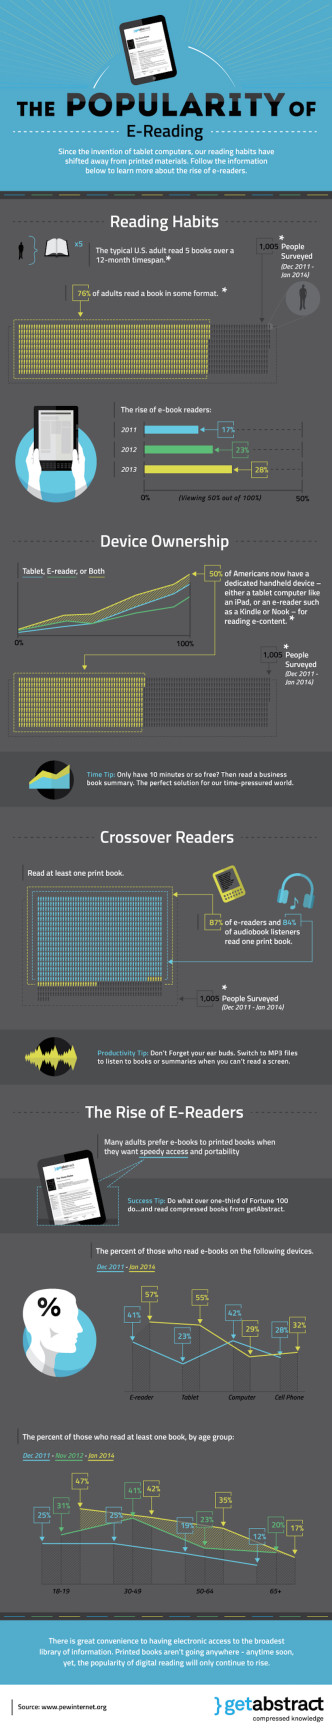 The growing popularity of e-reading #infographic